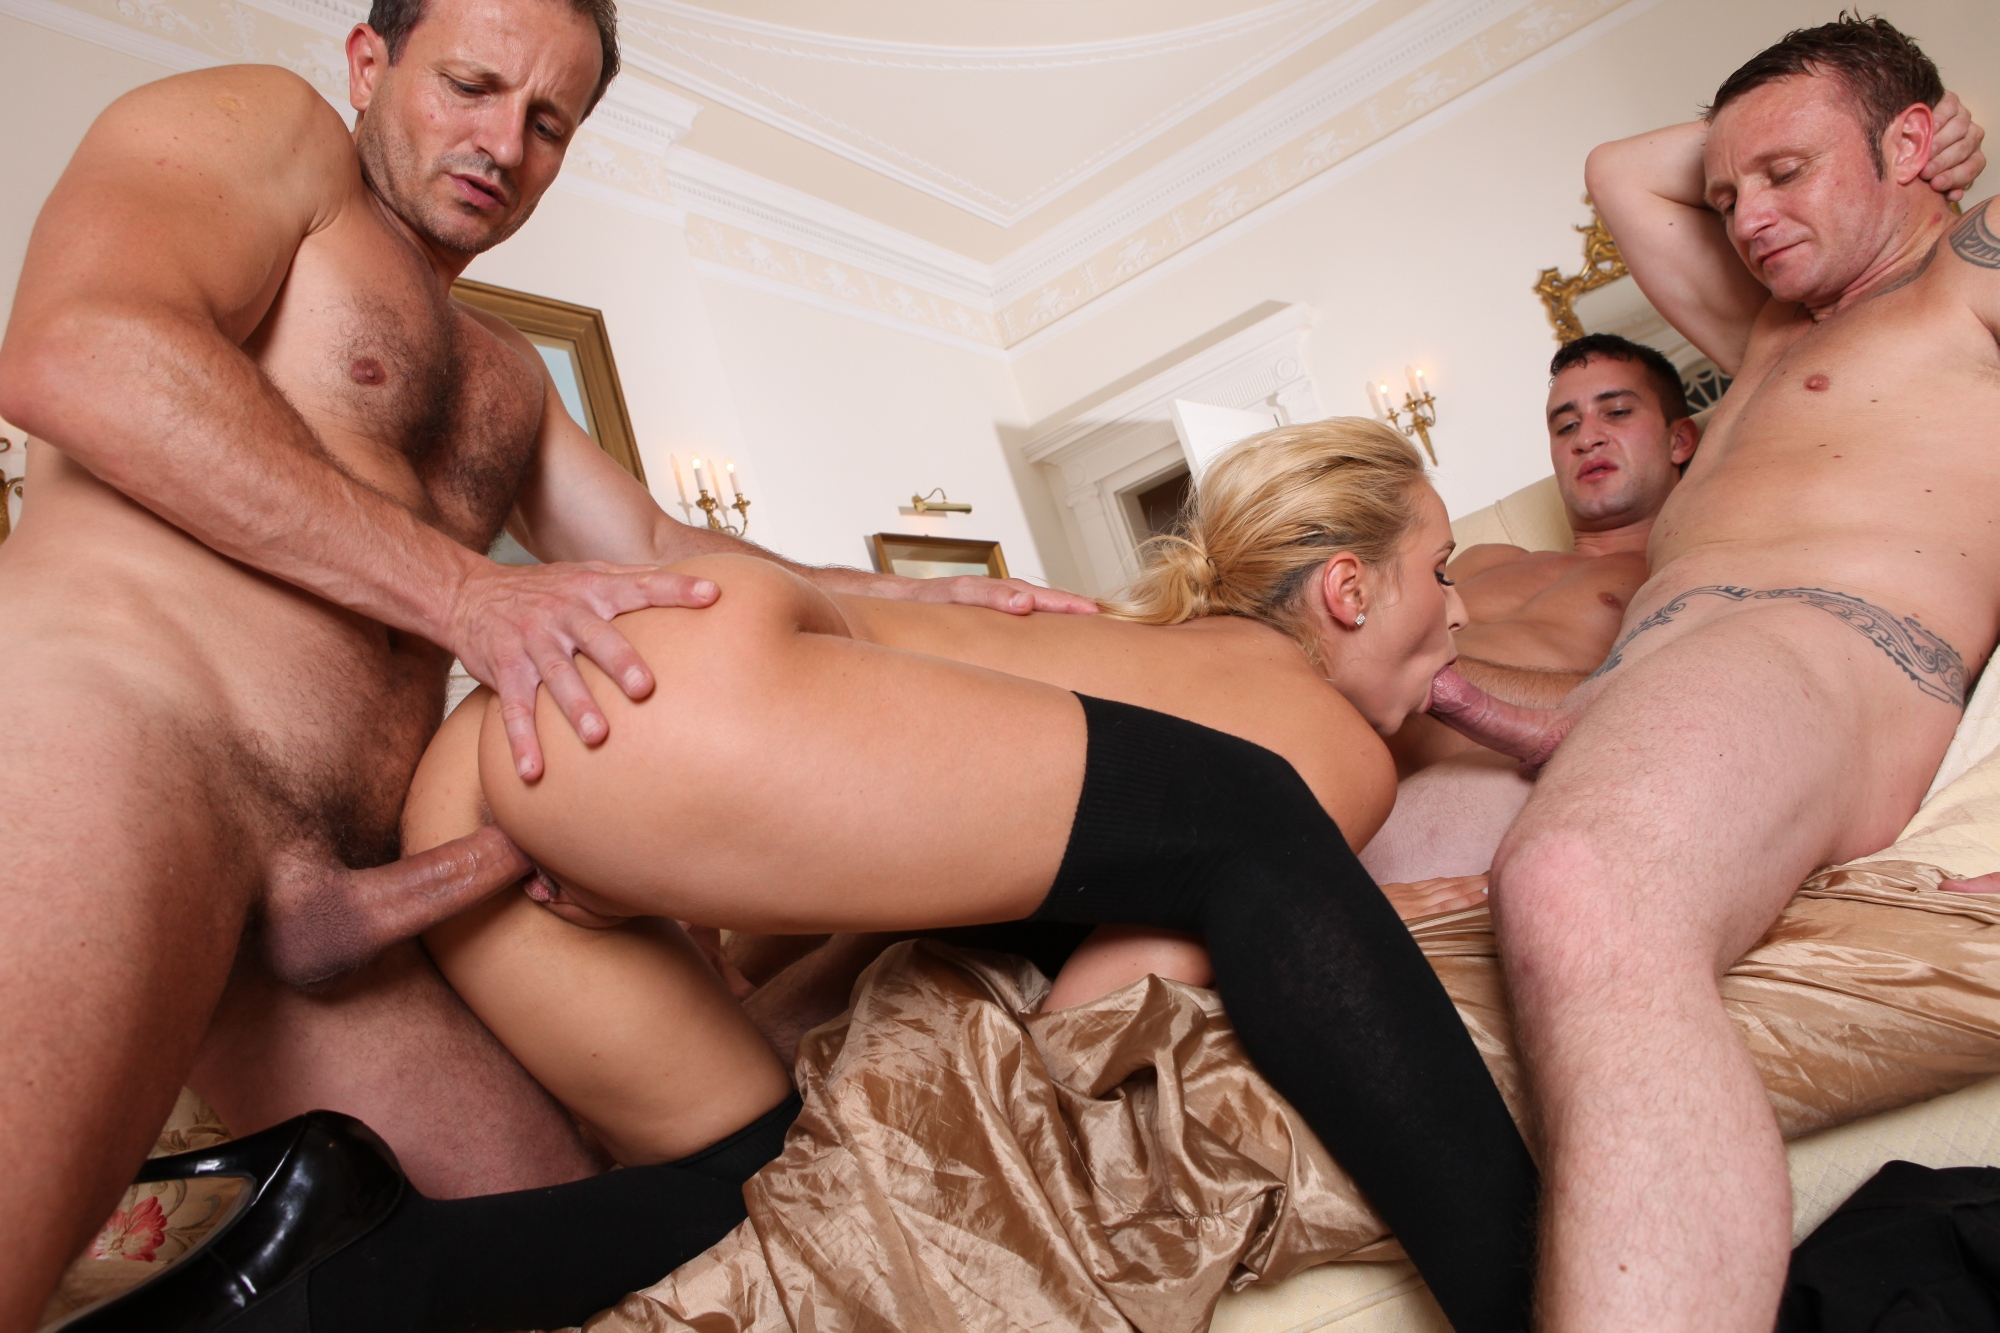 Harmony vision young harlot bibi noel punished by a bbc - 4 5